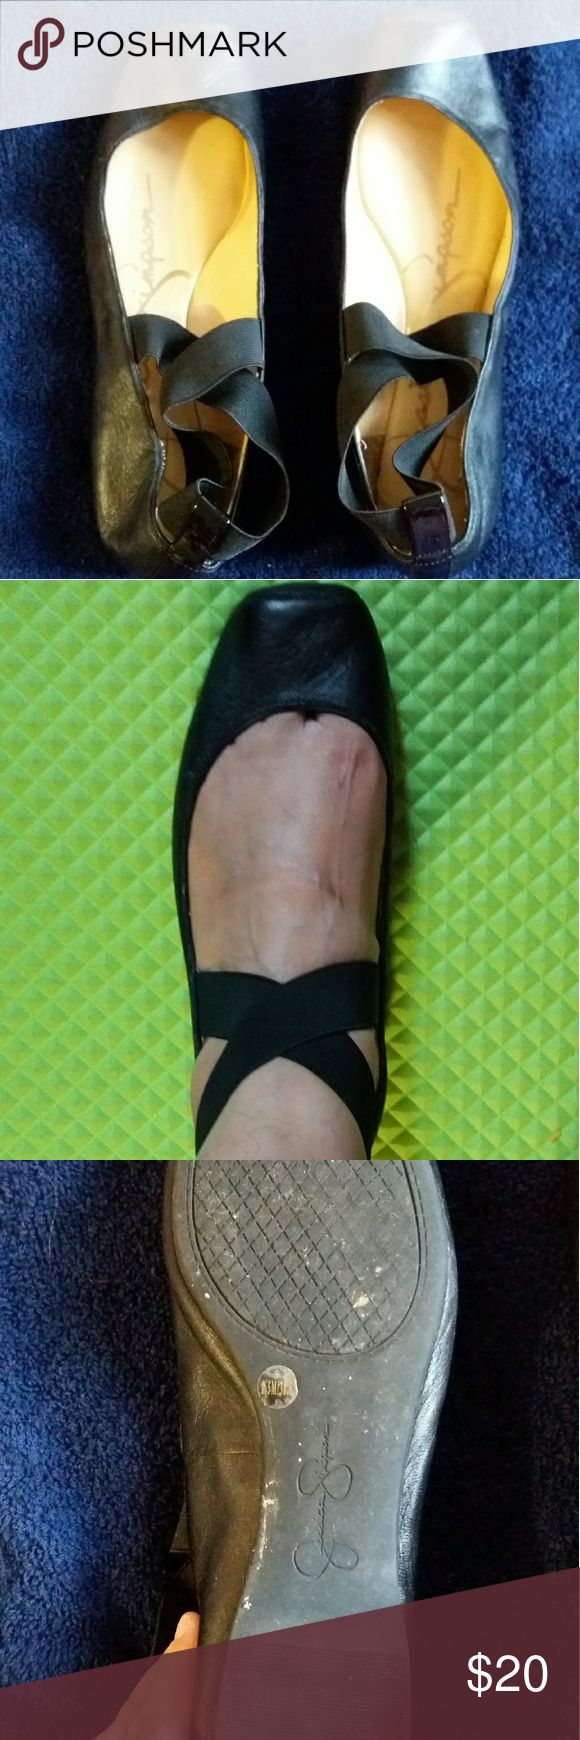 Jessica Simpson ballet flats black ballet style shoes only worn few times Jessica Simpson Shoes Flats & Loafers